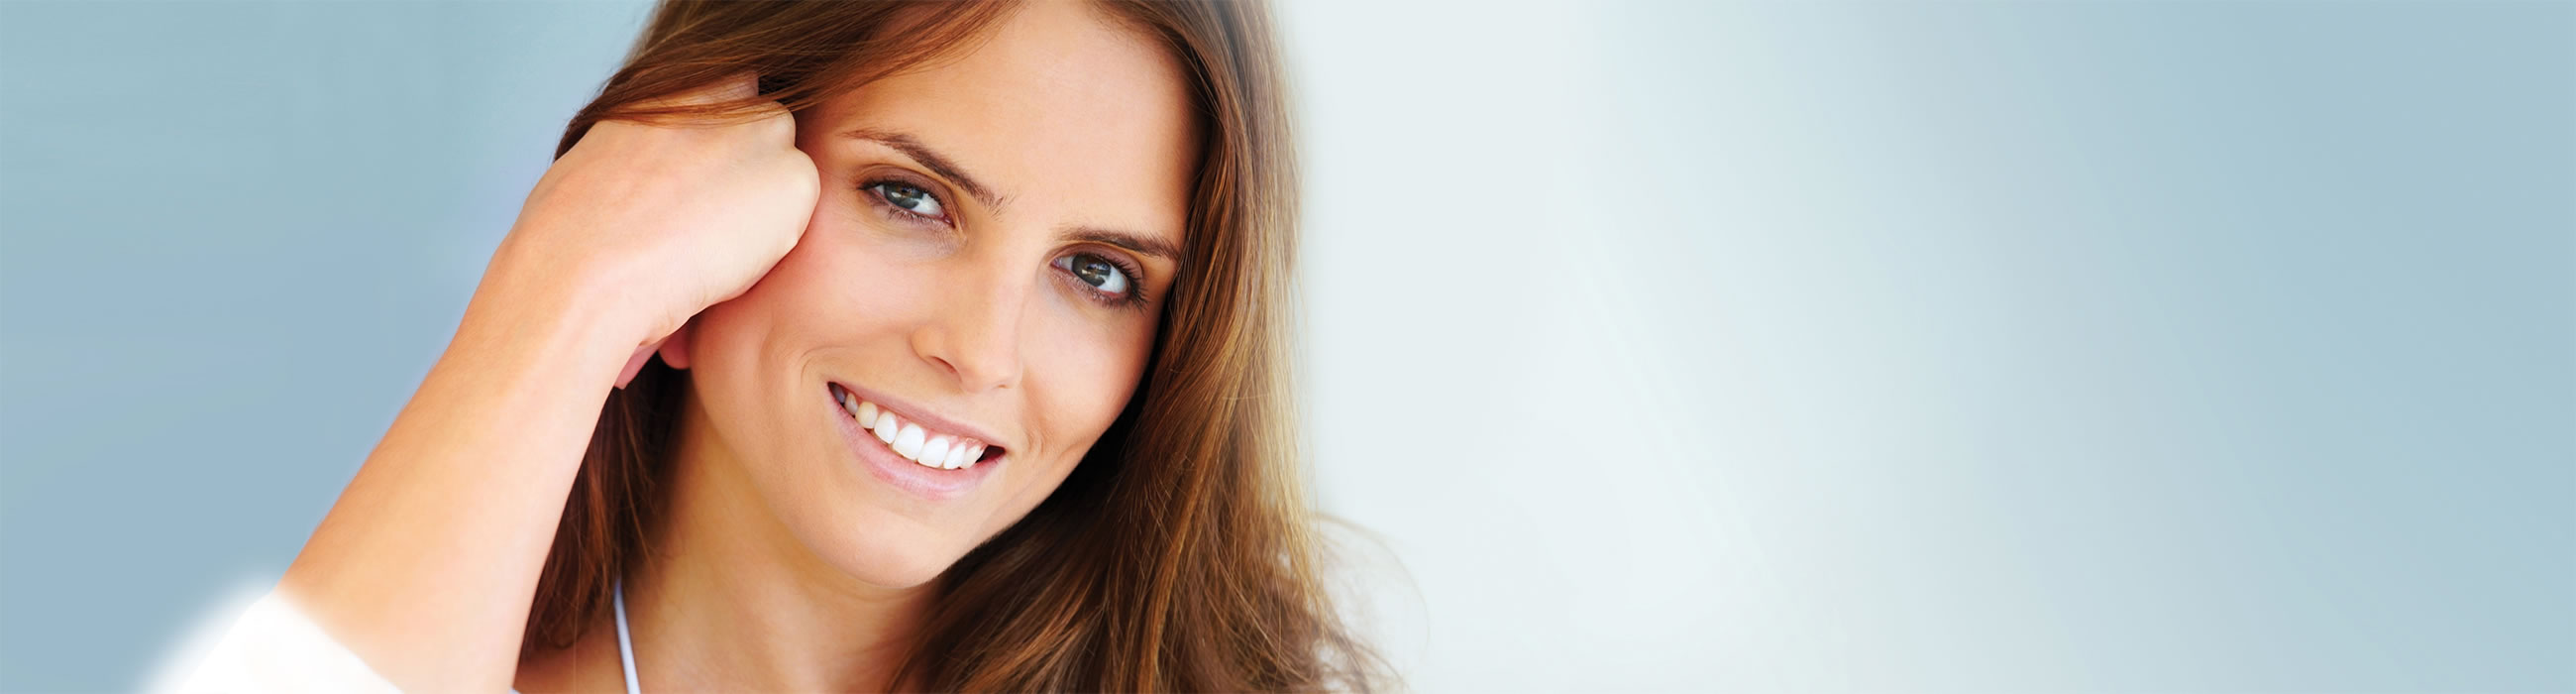 Female smiling and posing at our Watford dentist, Senova Dental Studios in Watford, Hertfordshire